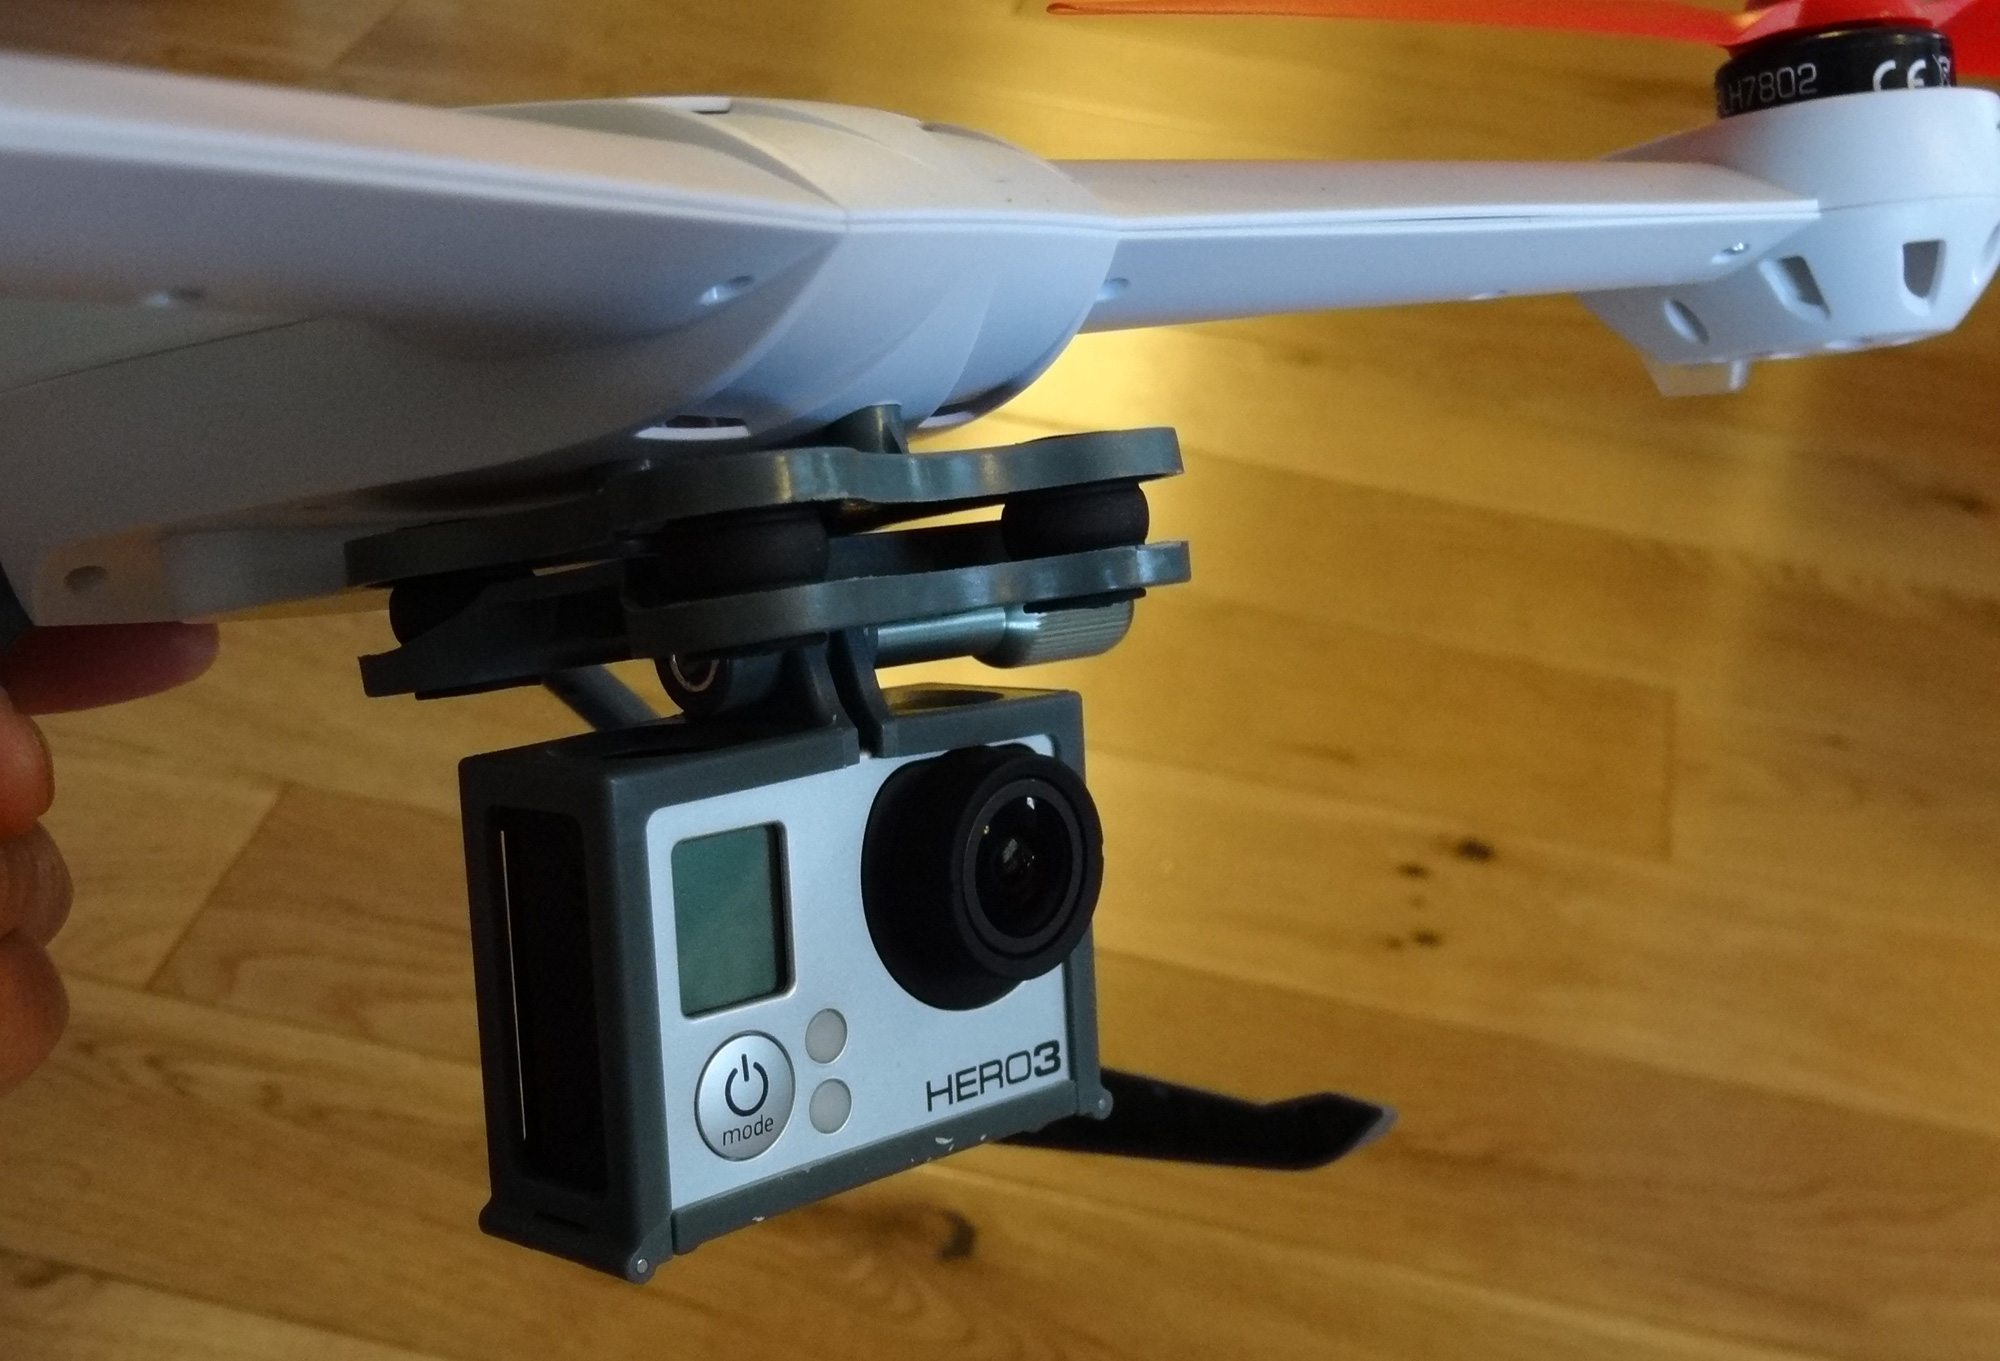 Blade 350 QX with GoPro